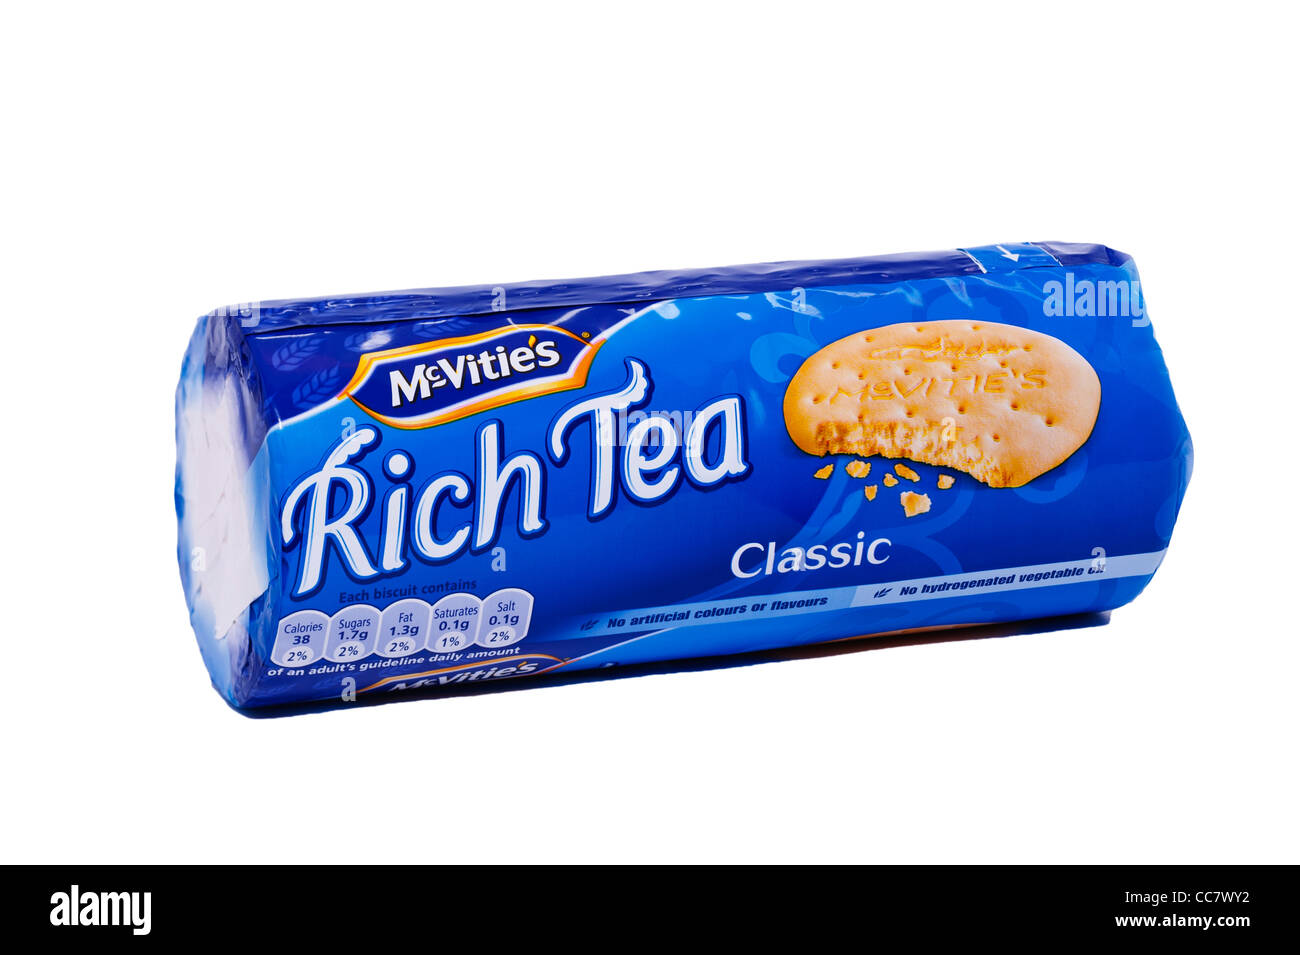 A packet of Mcvitie's rich tea biscuits on a white background - Stock Image